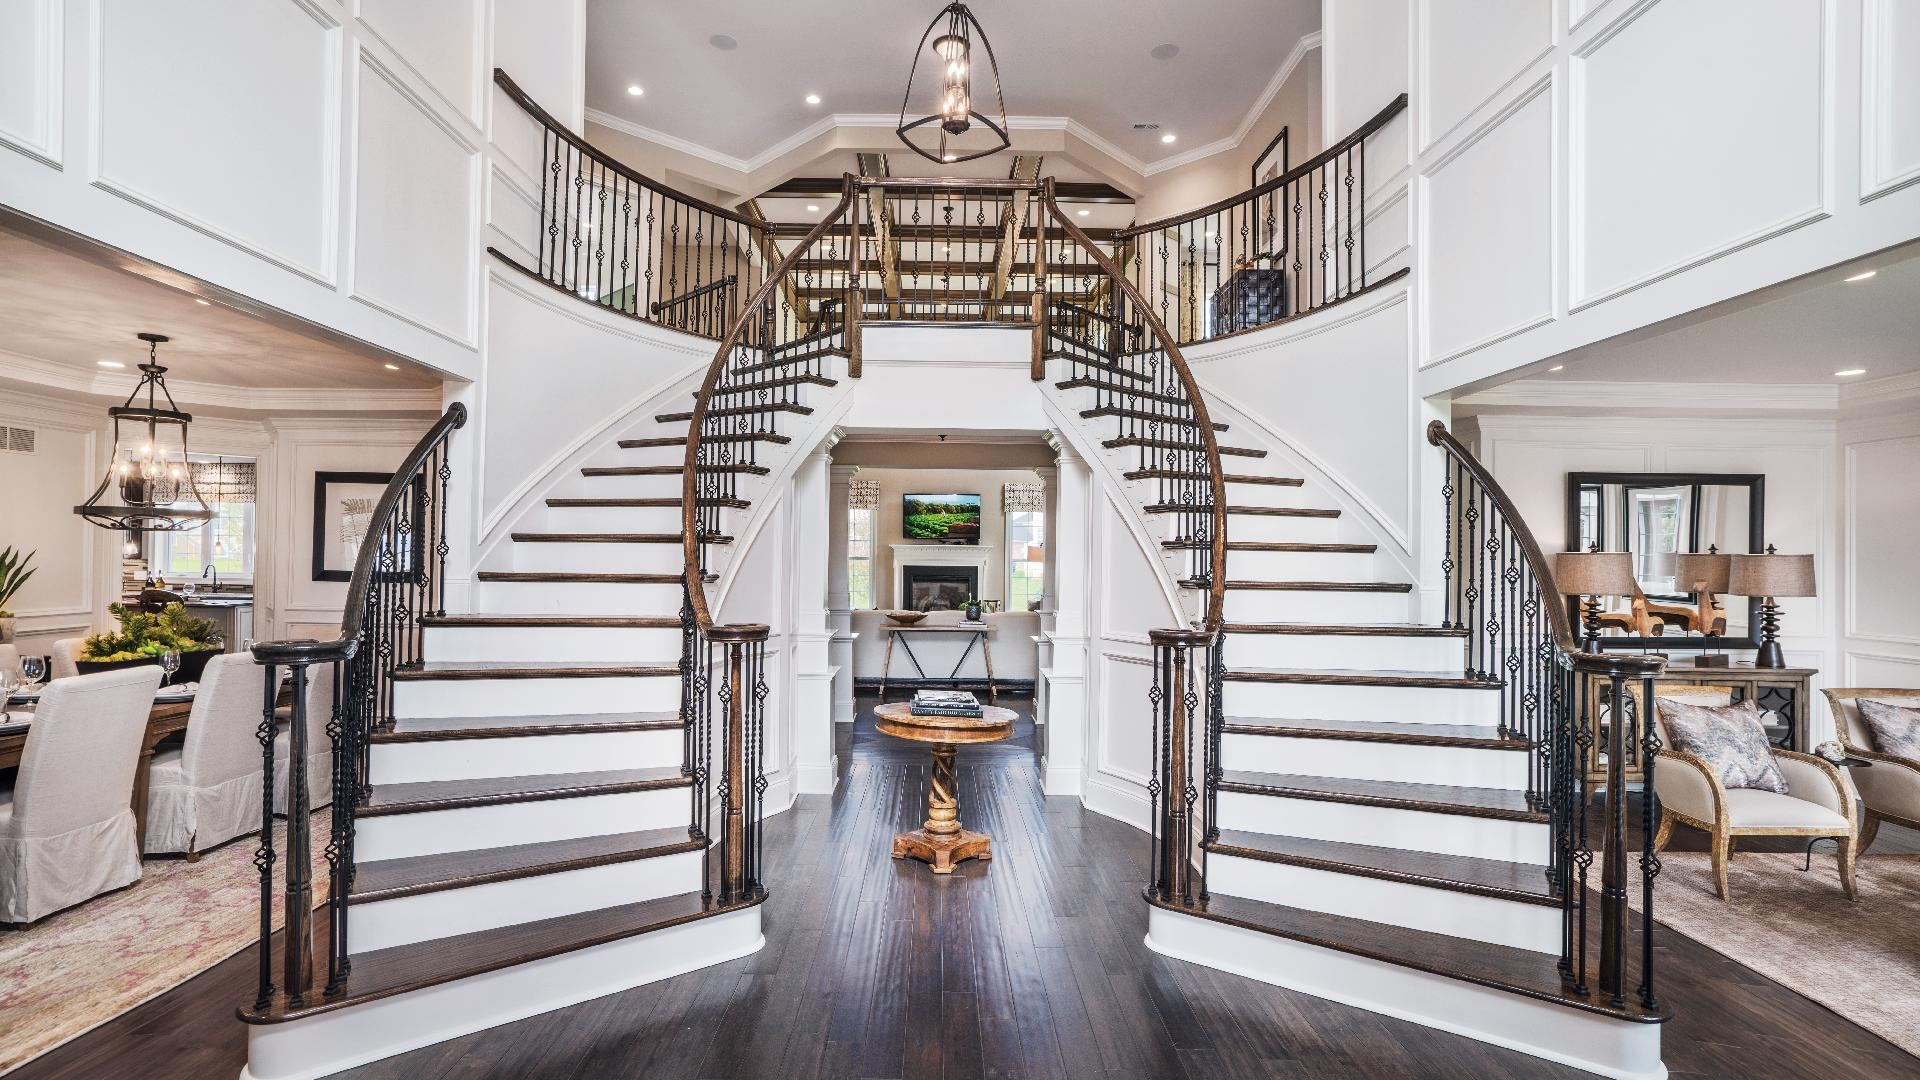 Toll Brothers At Montcaret The Harding Home Design   Double Staircase House Plans   12 Room   Mansion   Design   Small House   Bedroom